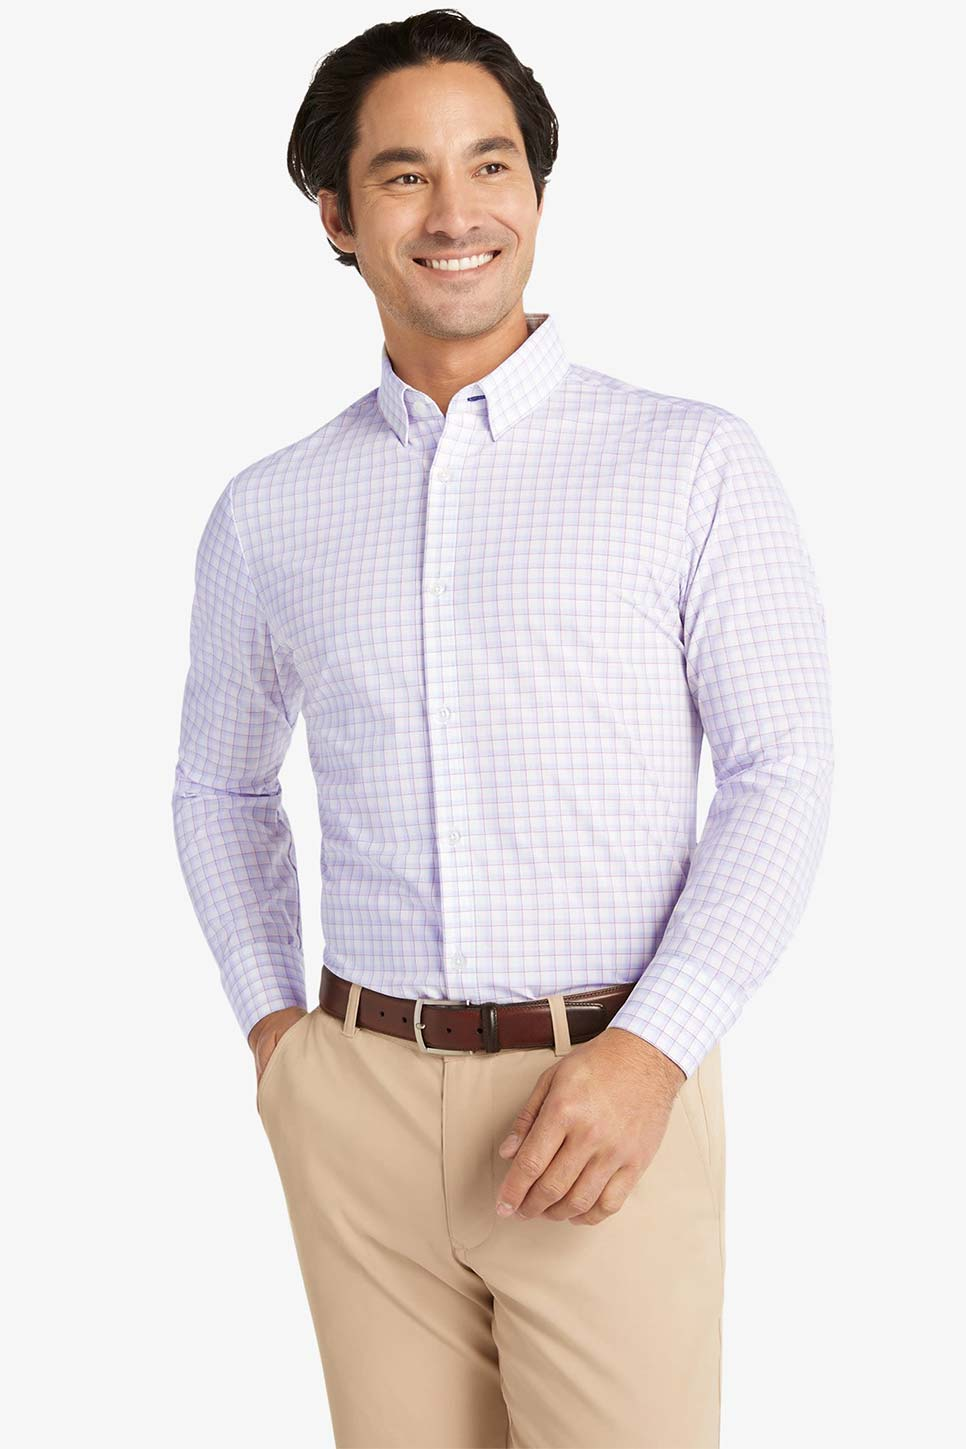 Mizzen + Main - Leeward LS - Red Light Blue Multi Check - Front